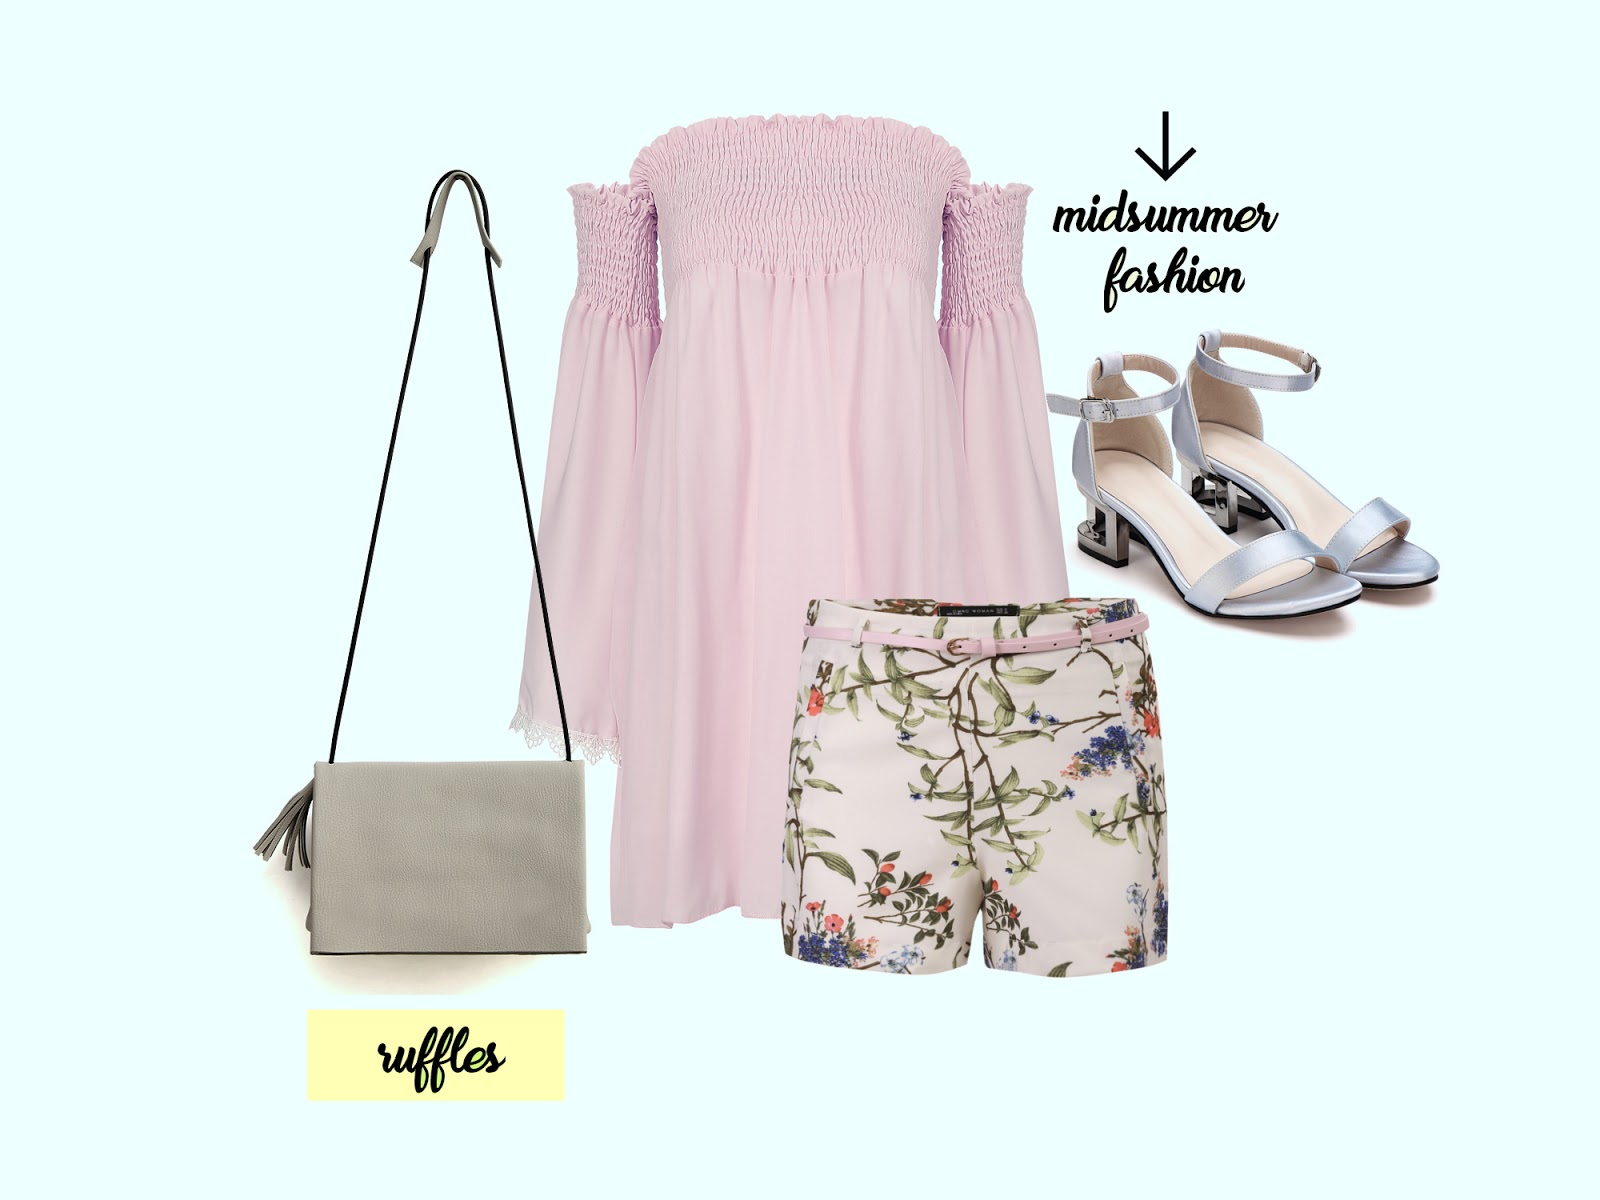 runway fashion summer midsummer outfit blogger set liz breygel